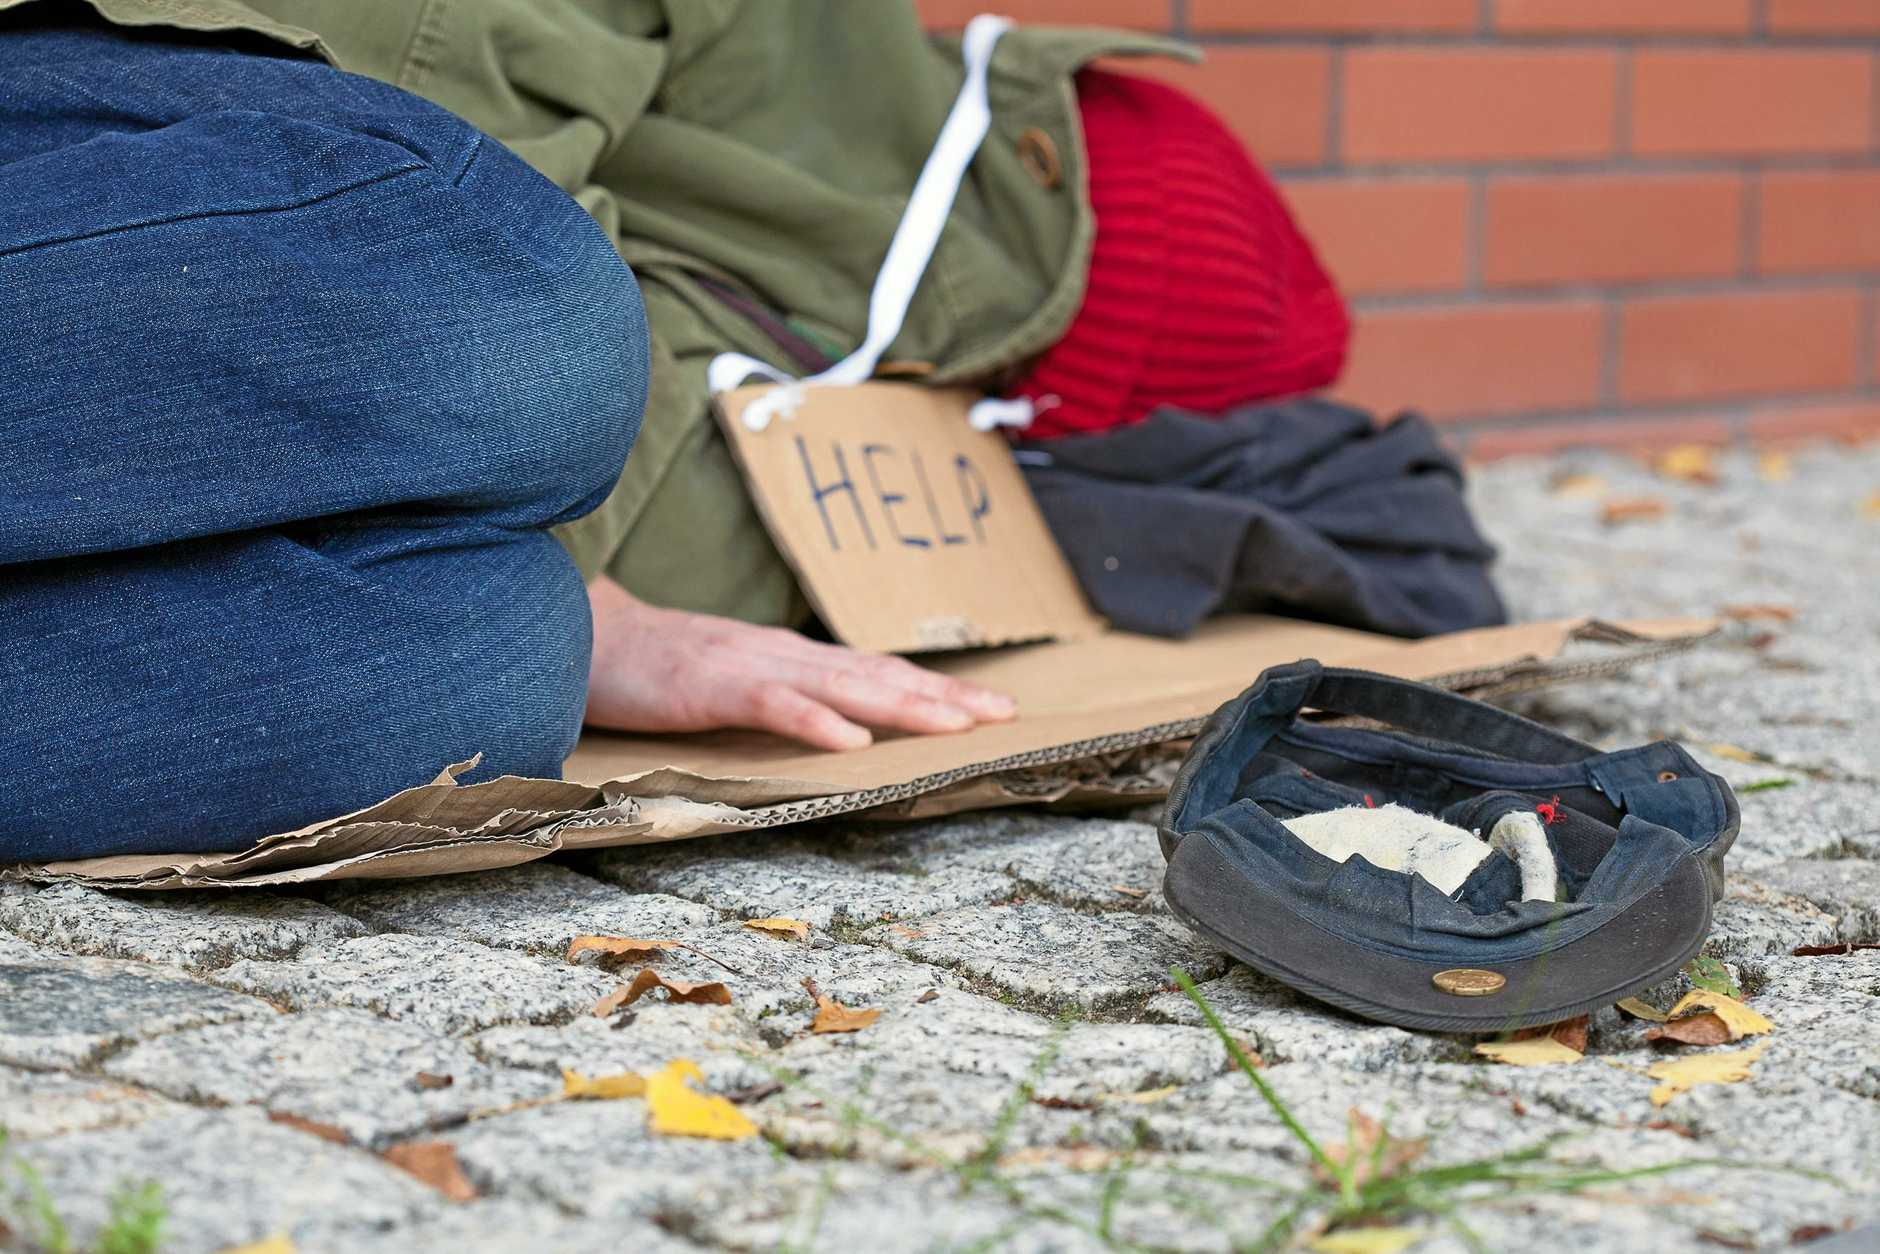 A new homelessness hub will be trialled in Toowoomba, which will put essential support and services under one roof.